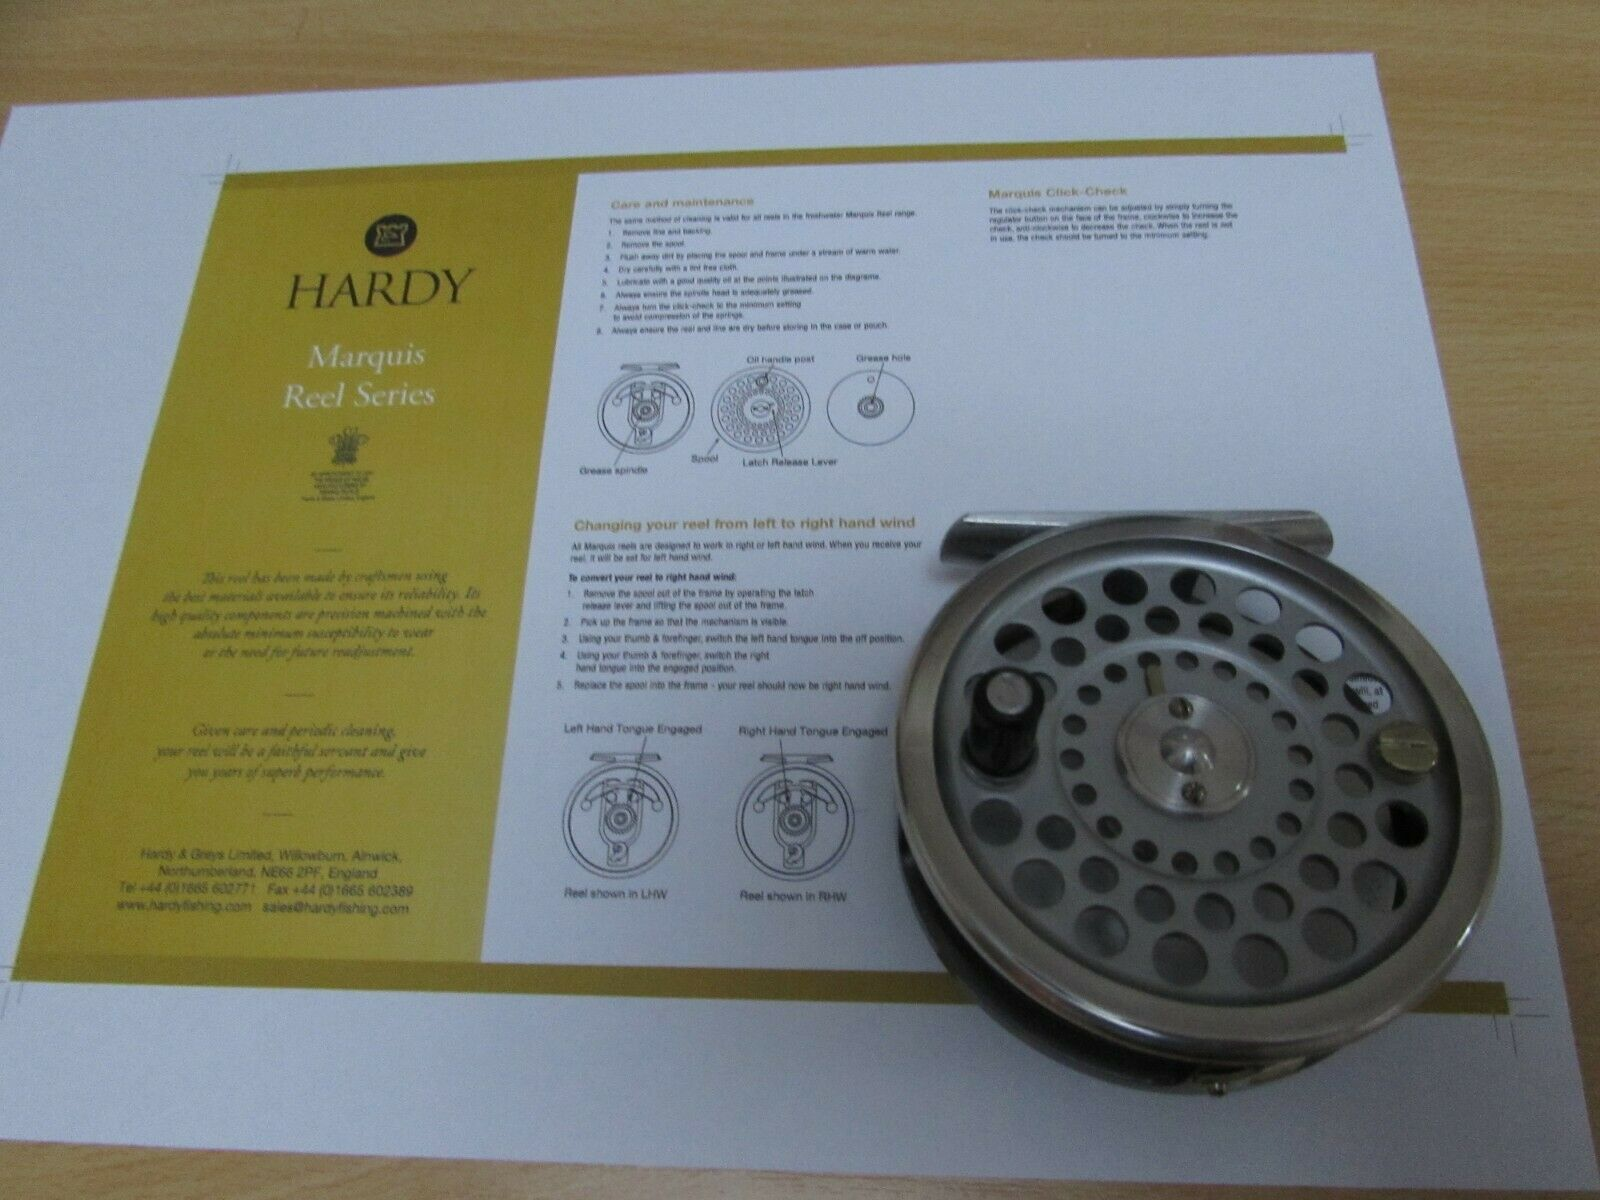 A1 vintage hardy marquis no. 5 trout fly fishing reel + case + counterbalance